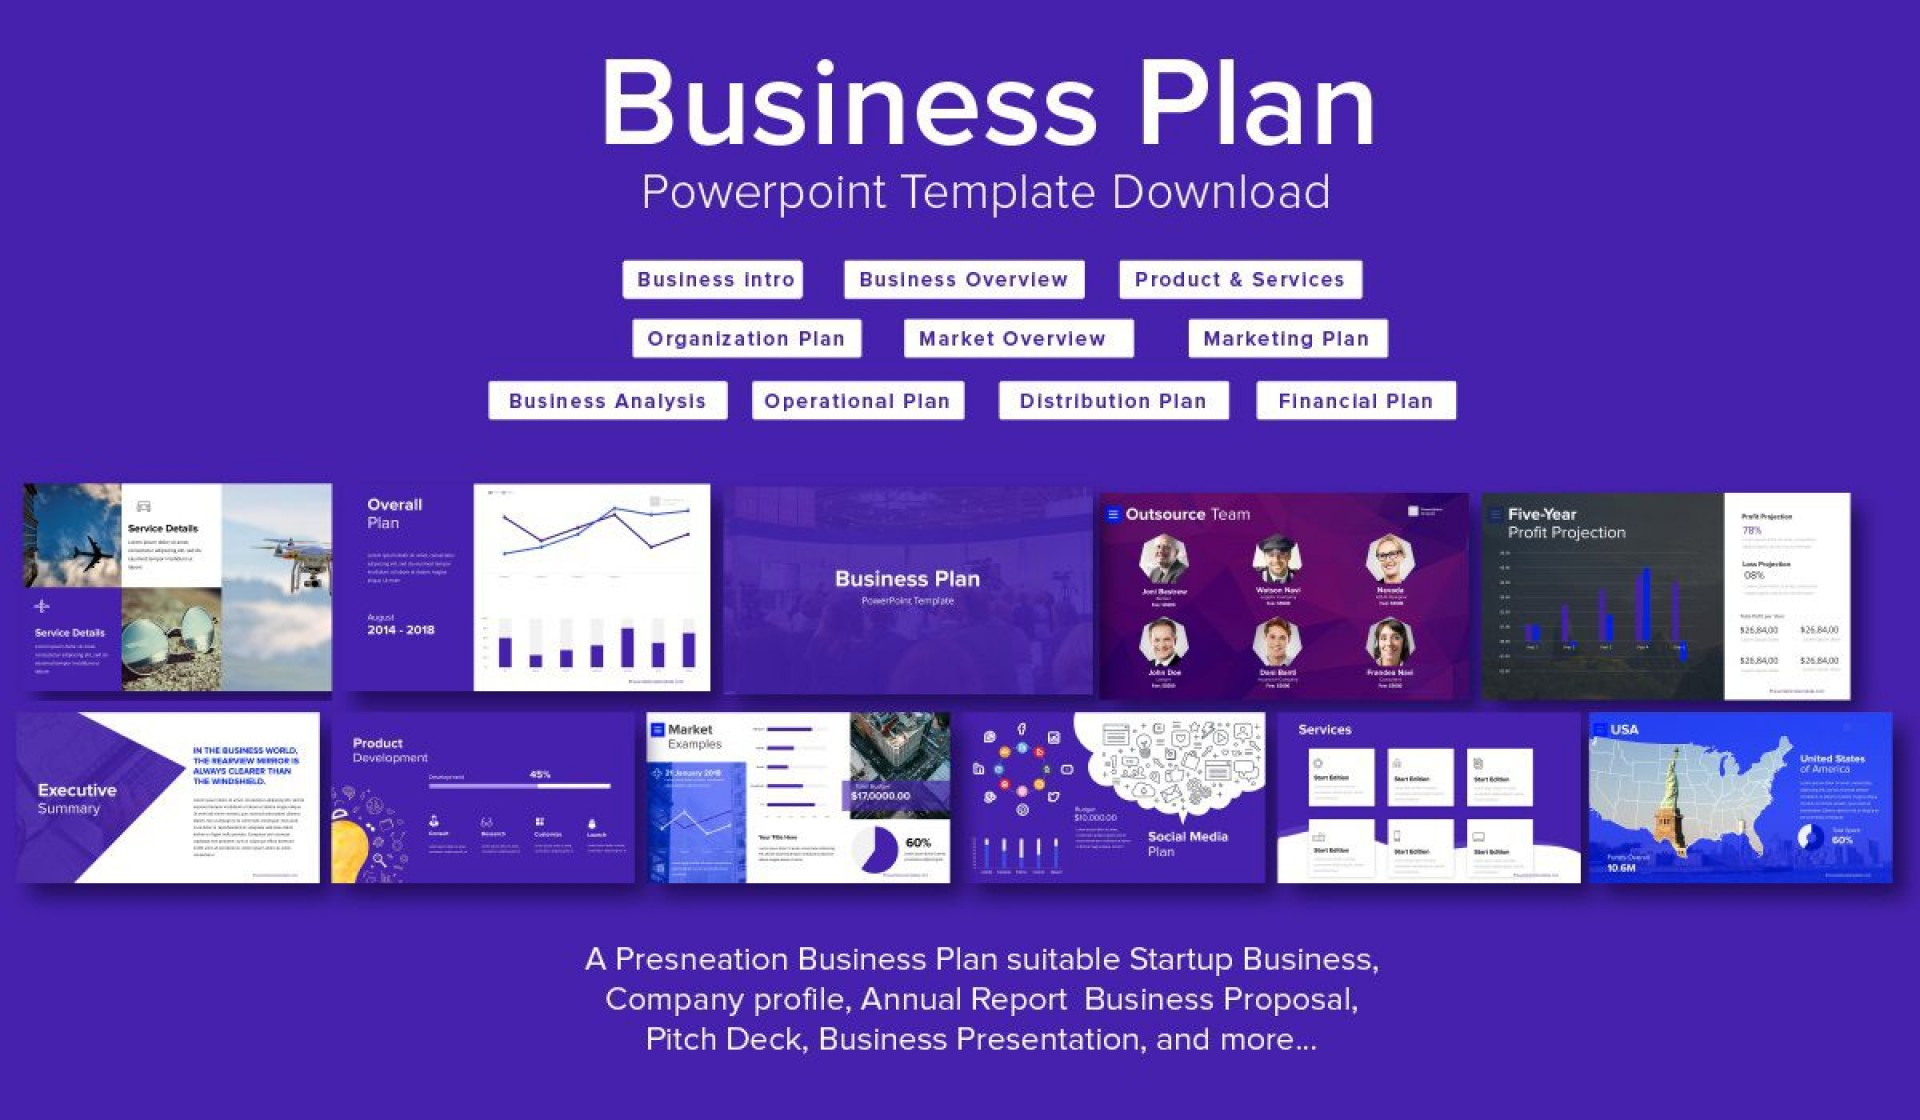 004 Fantastic Startup Busines Plan Template Ppt Picture  Free1920